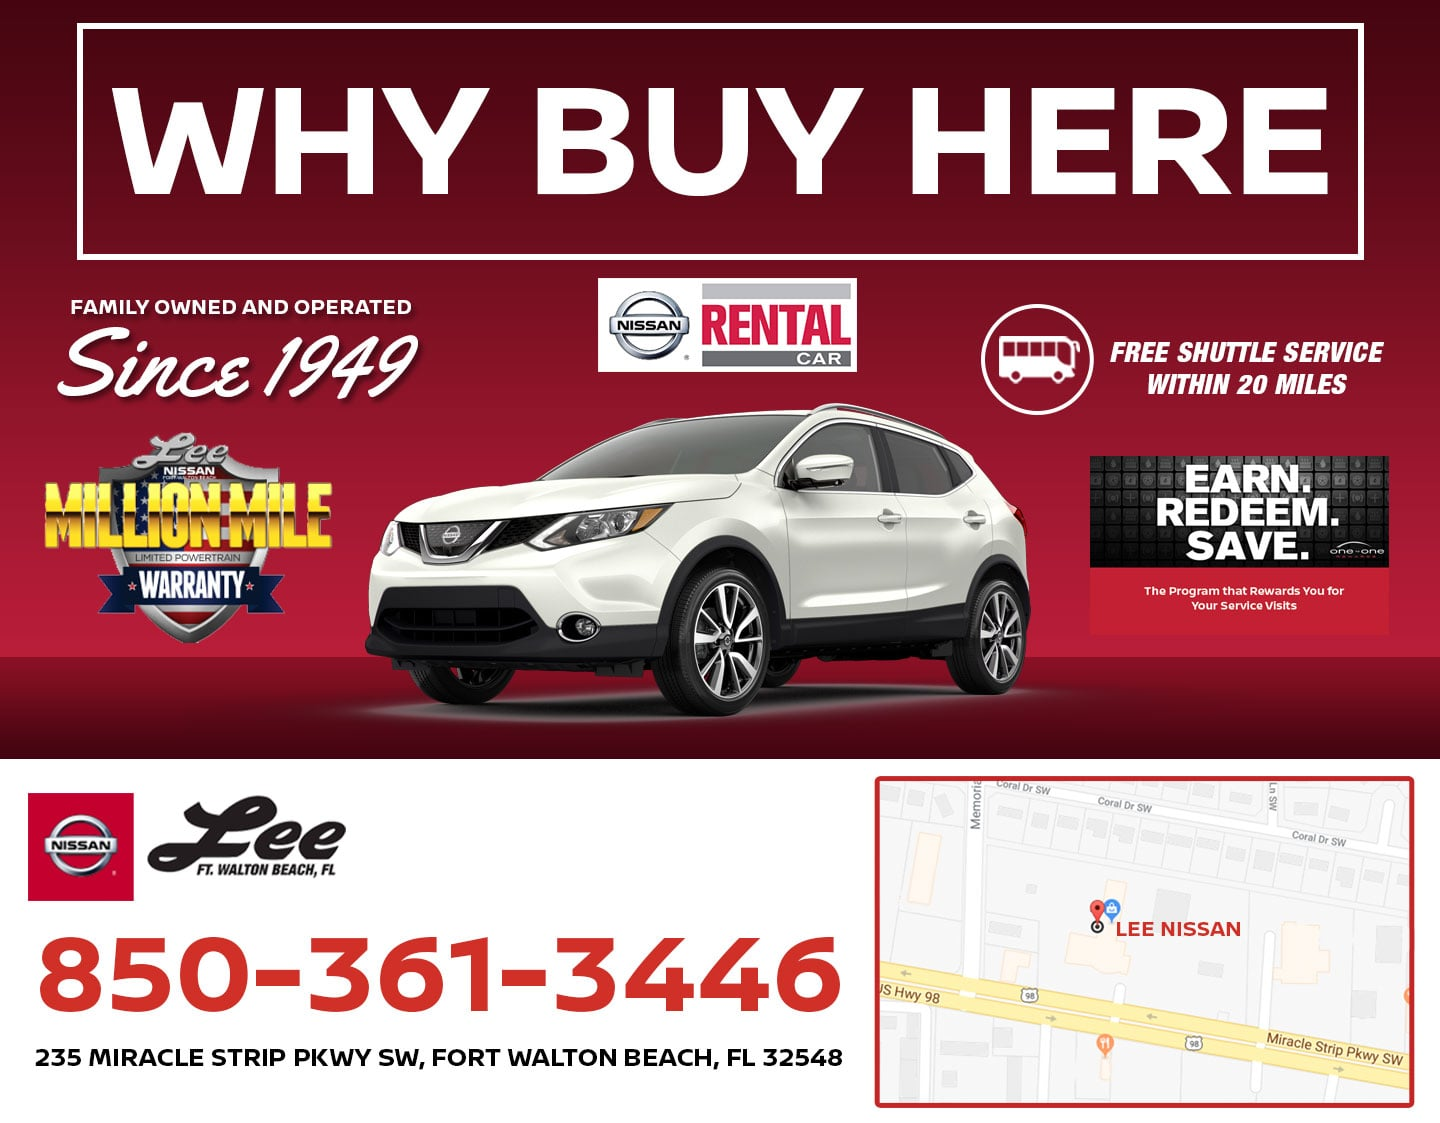 why buy here new cars for sale in fort walton beach fl lee nissan. Black Bedroom Furniture Sets. Home Design Ideas